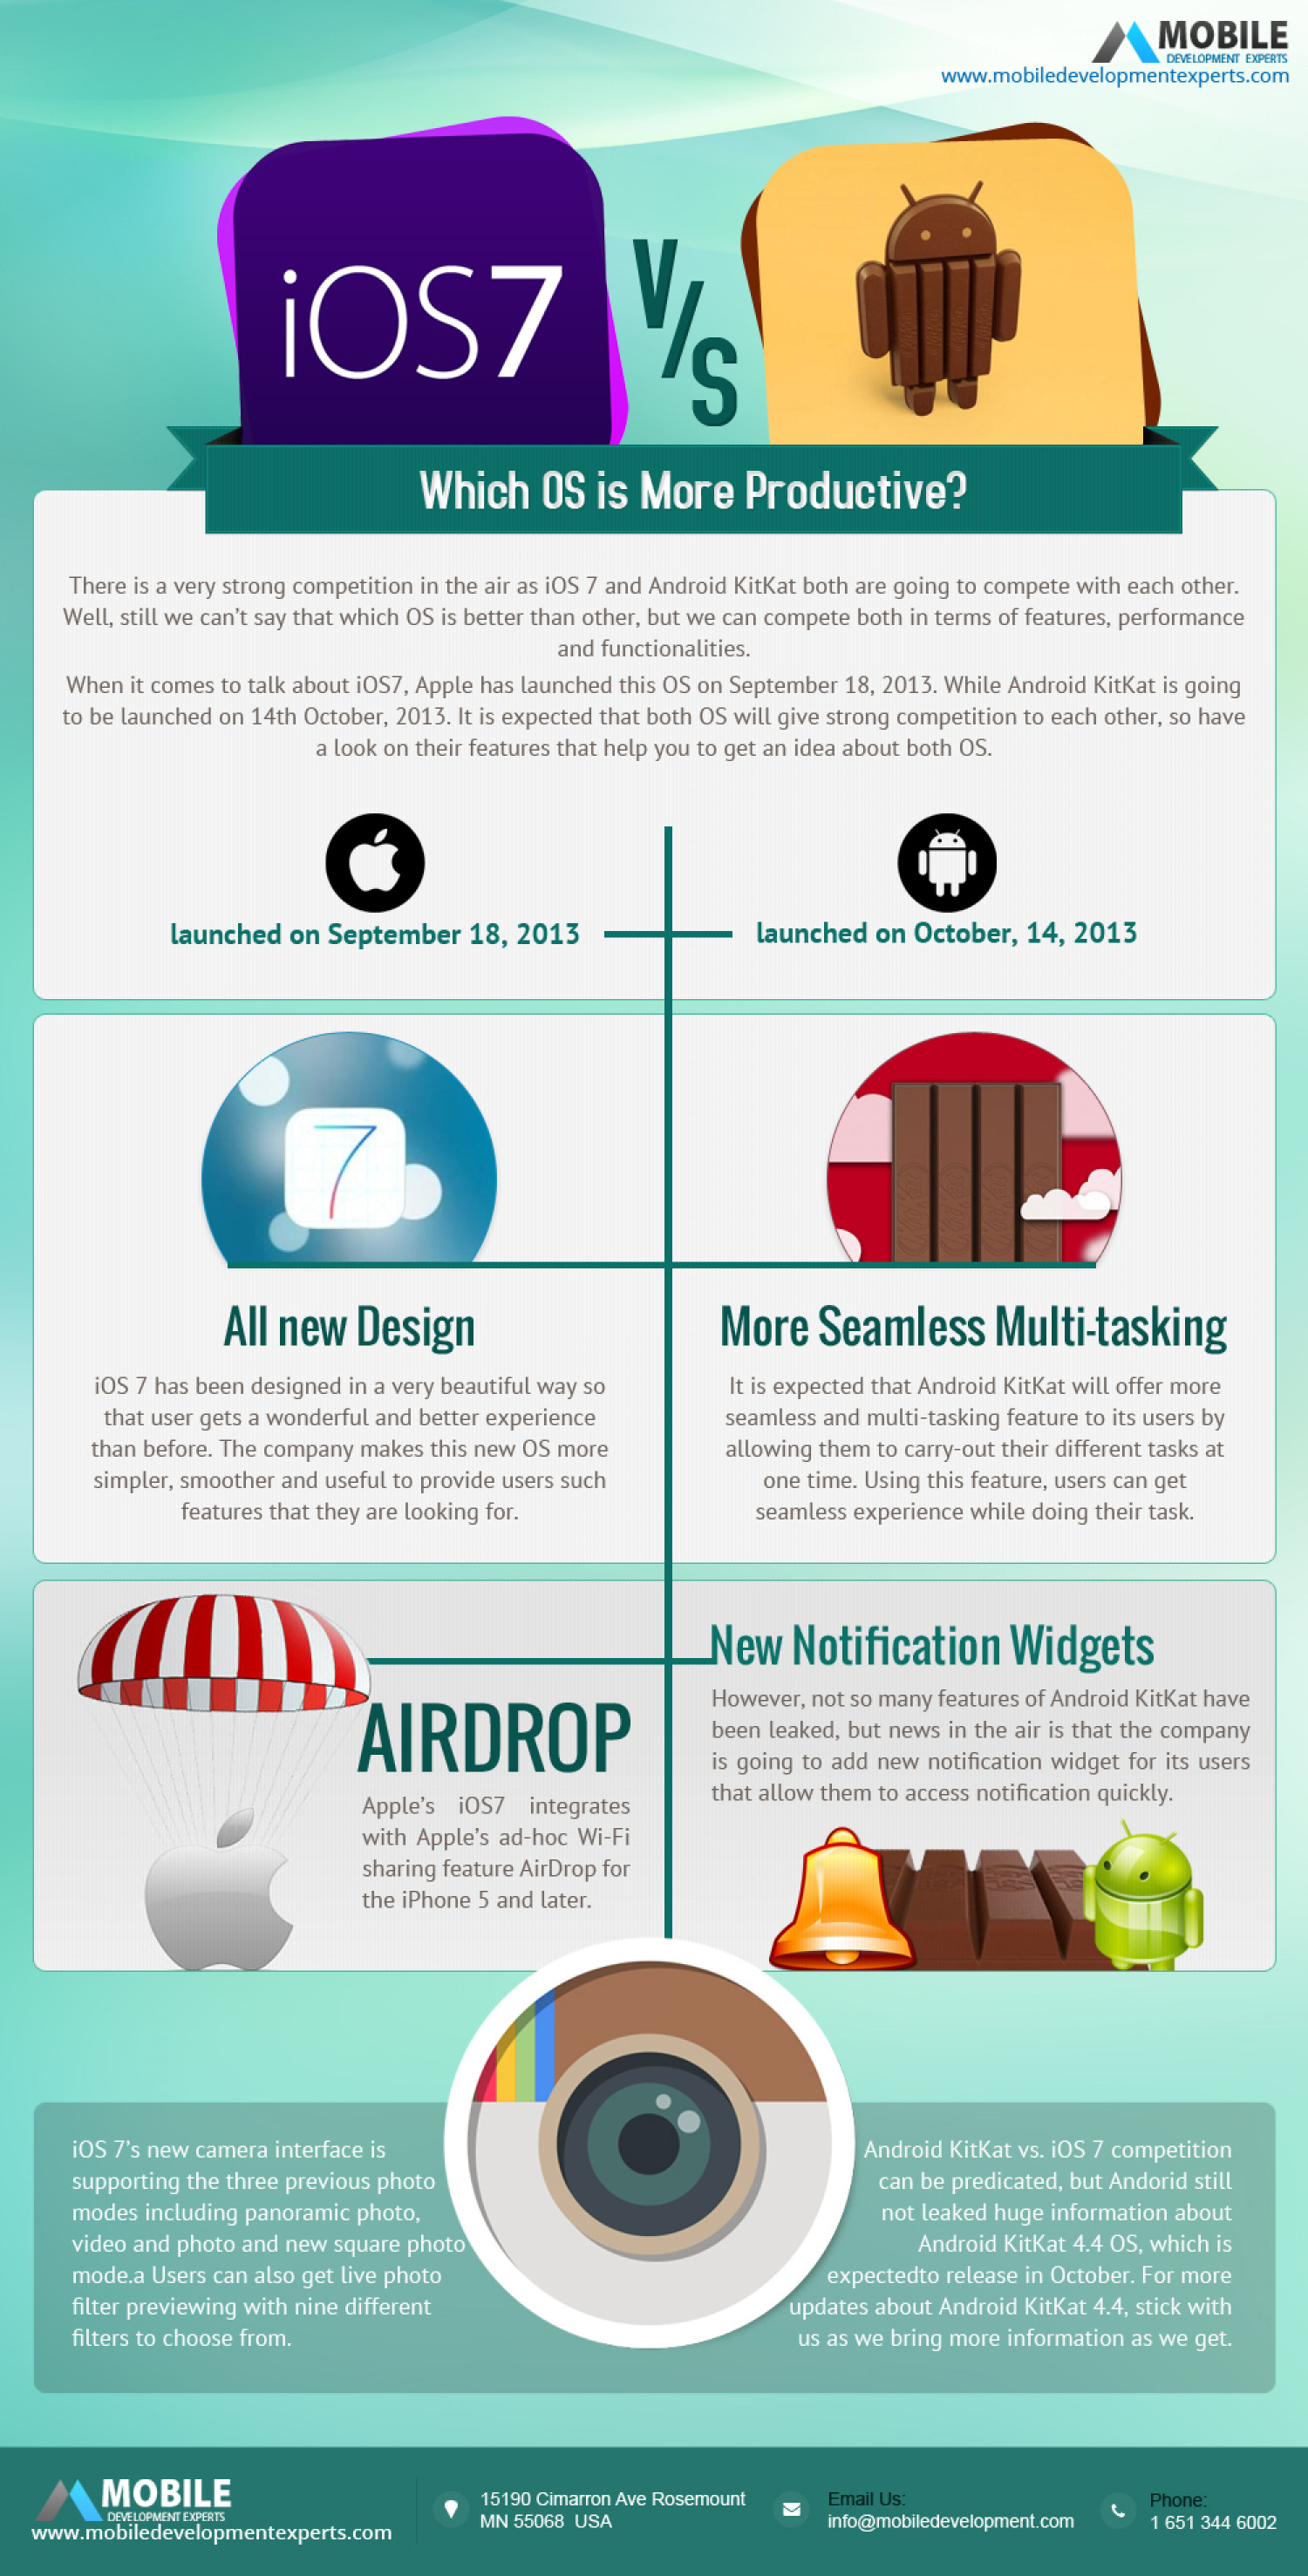 iOS 7 v/s Android KitKat – Which OS is More Productive? Infographic